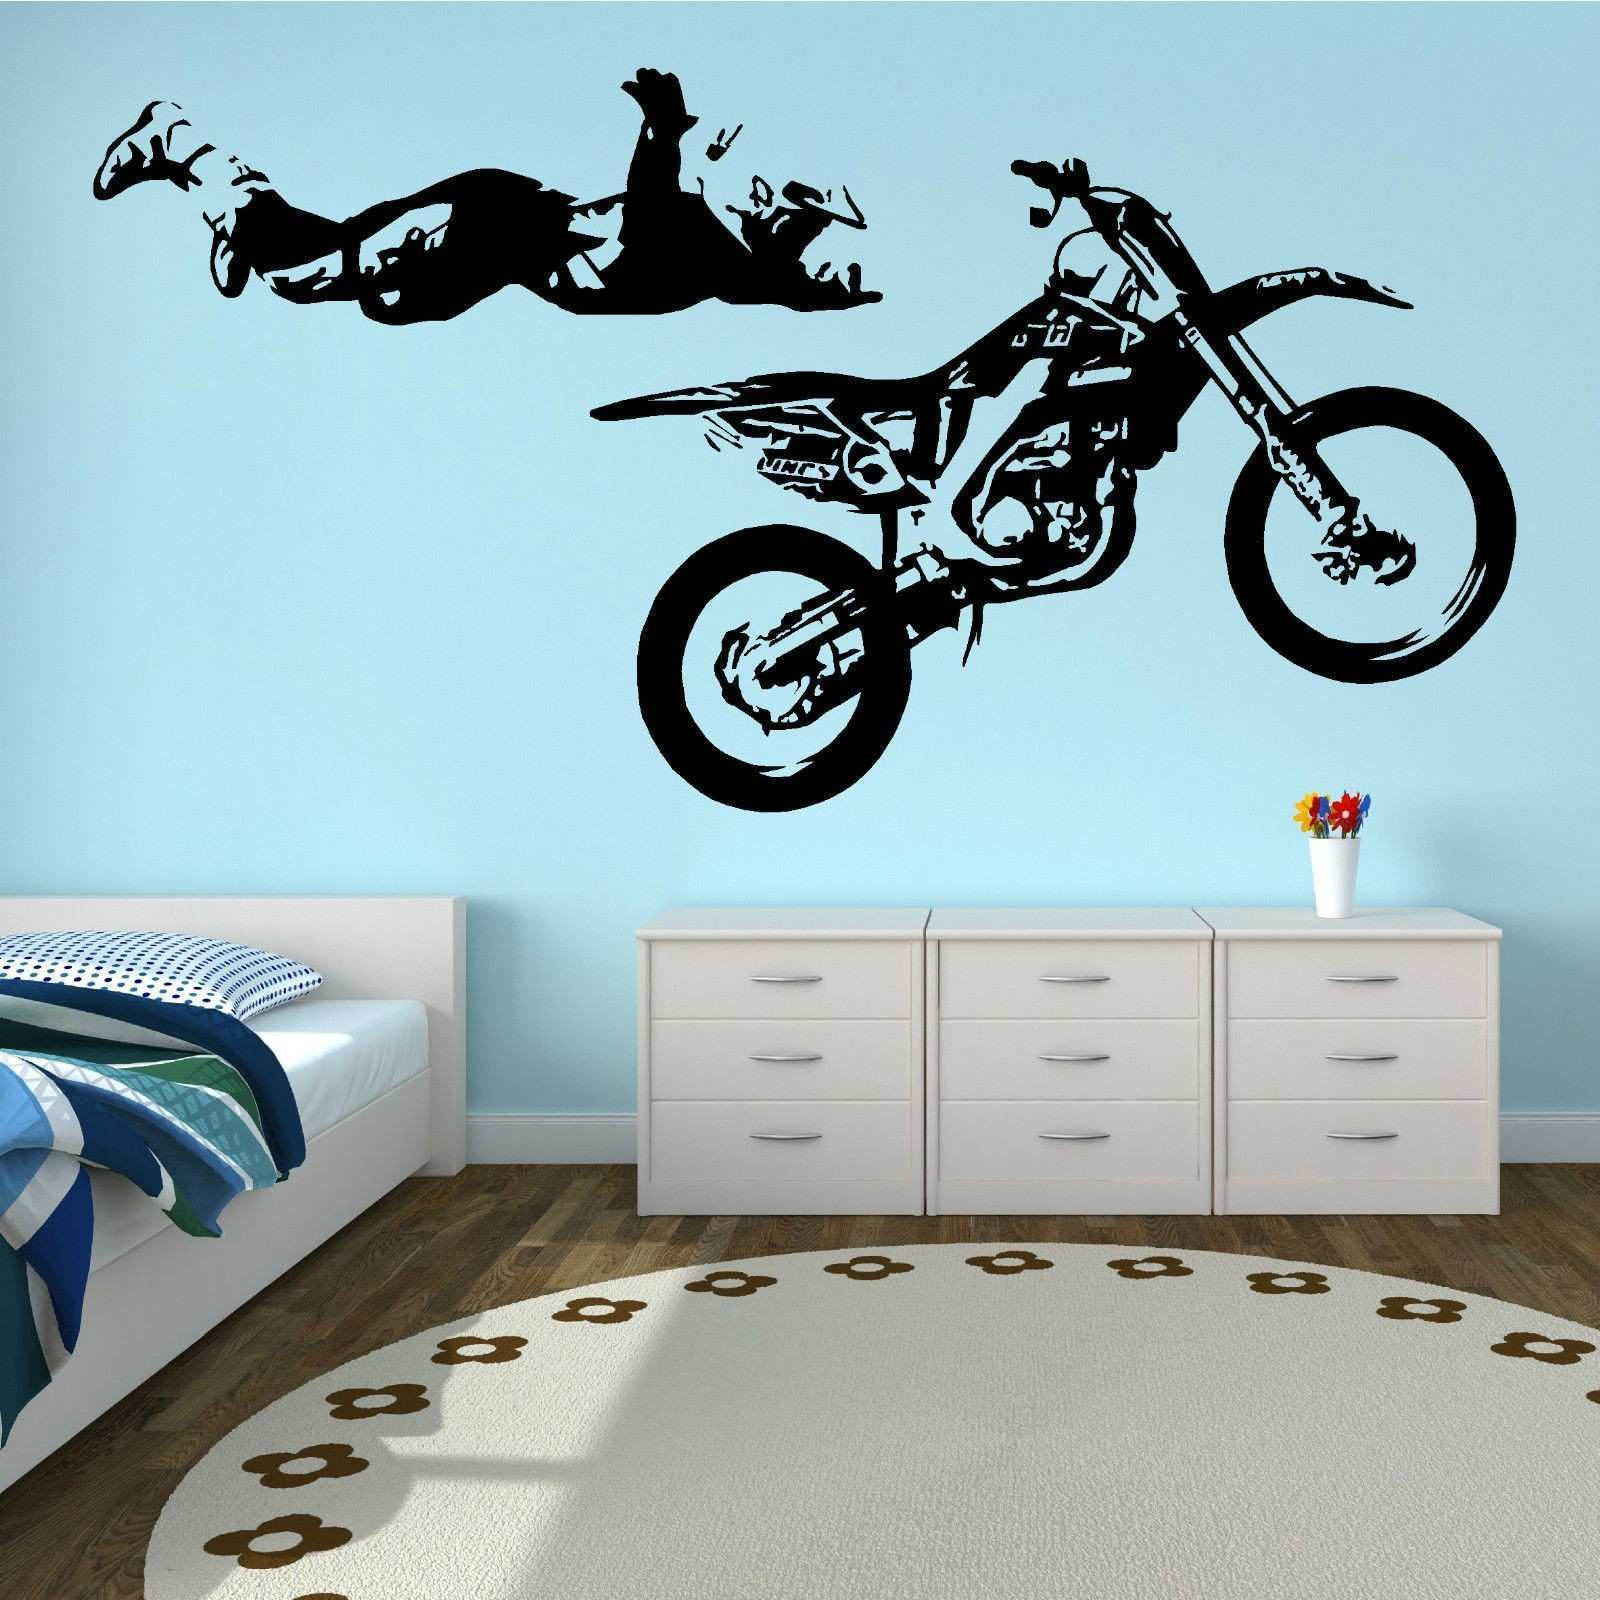 Sticker for Dirt Bike Inspiring Metal Wall Art Panels Fresh 1